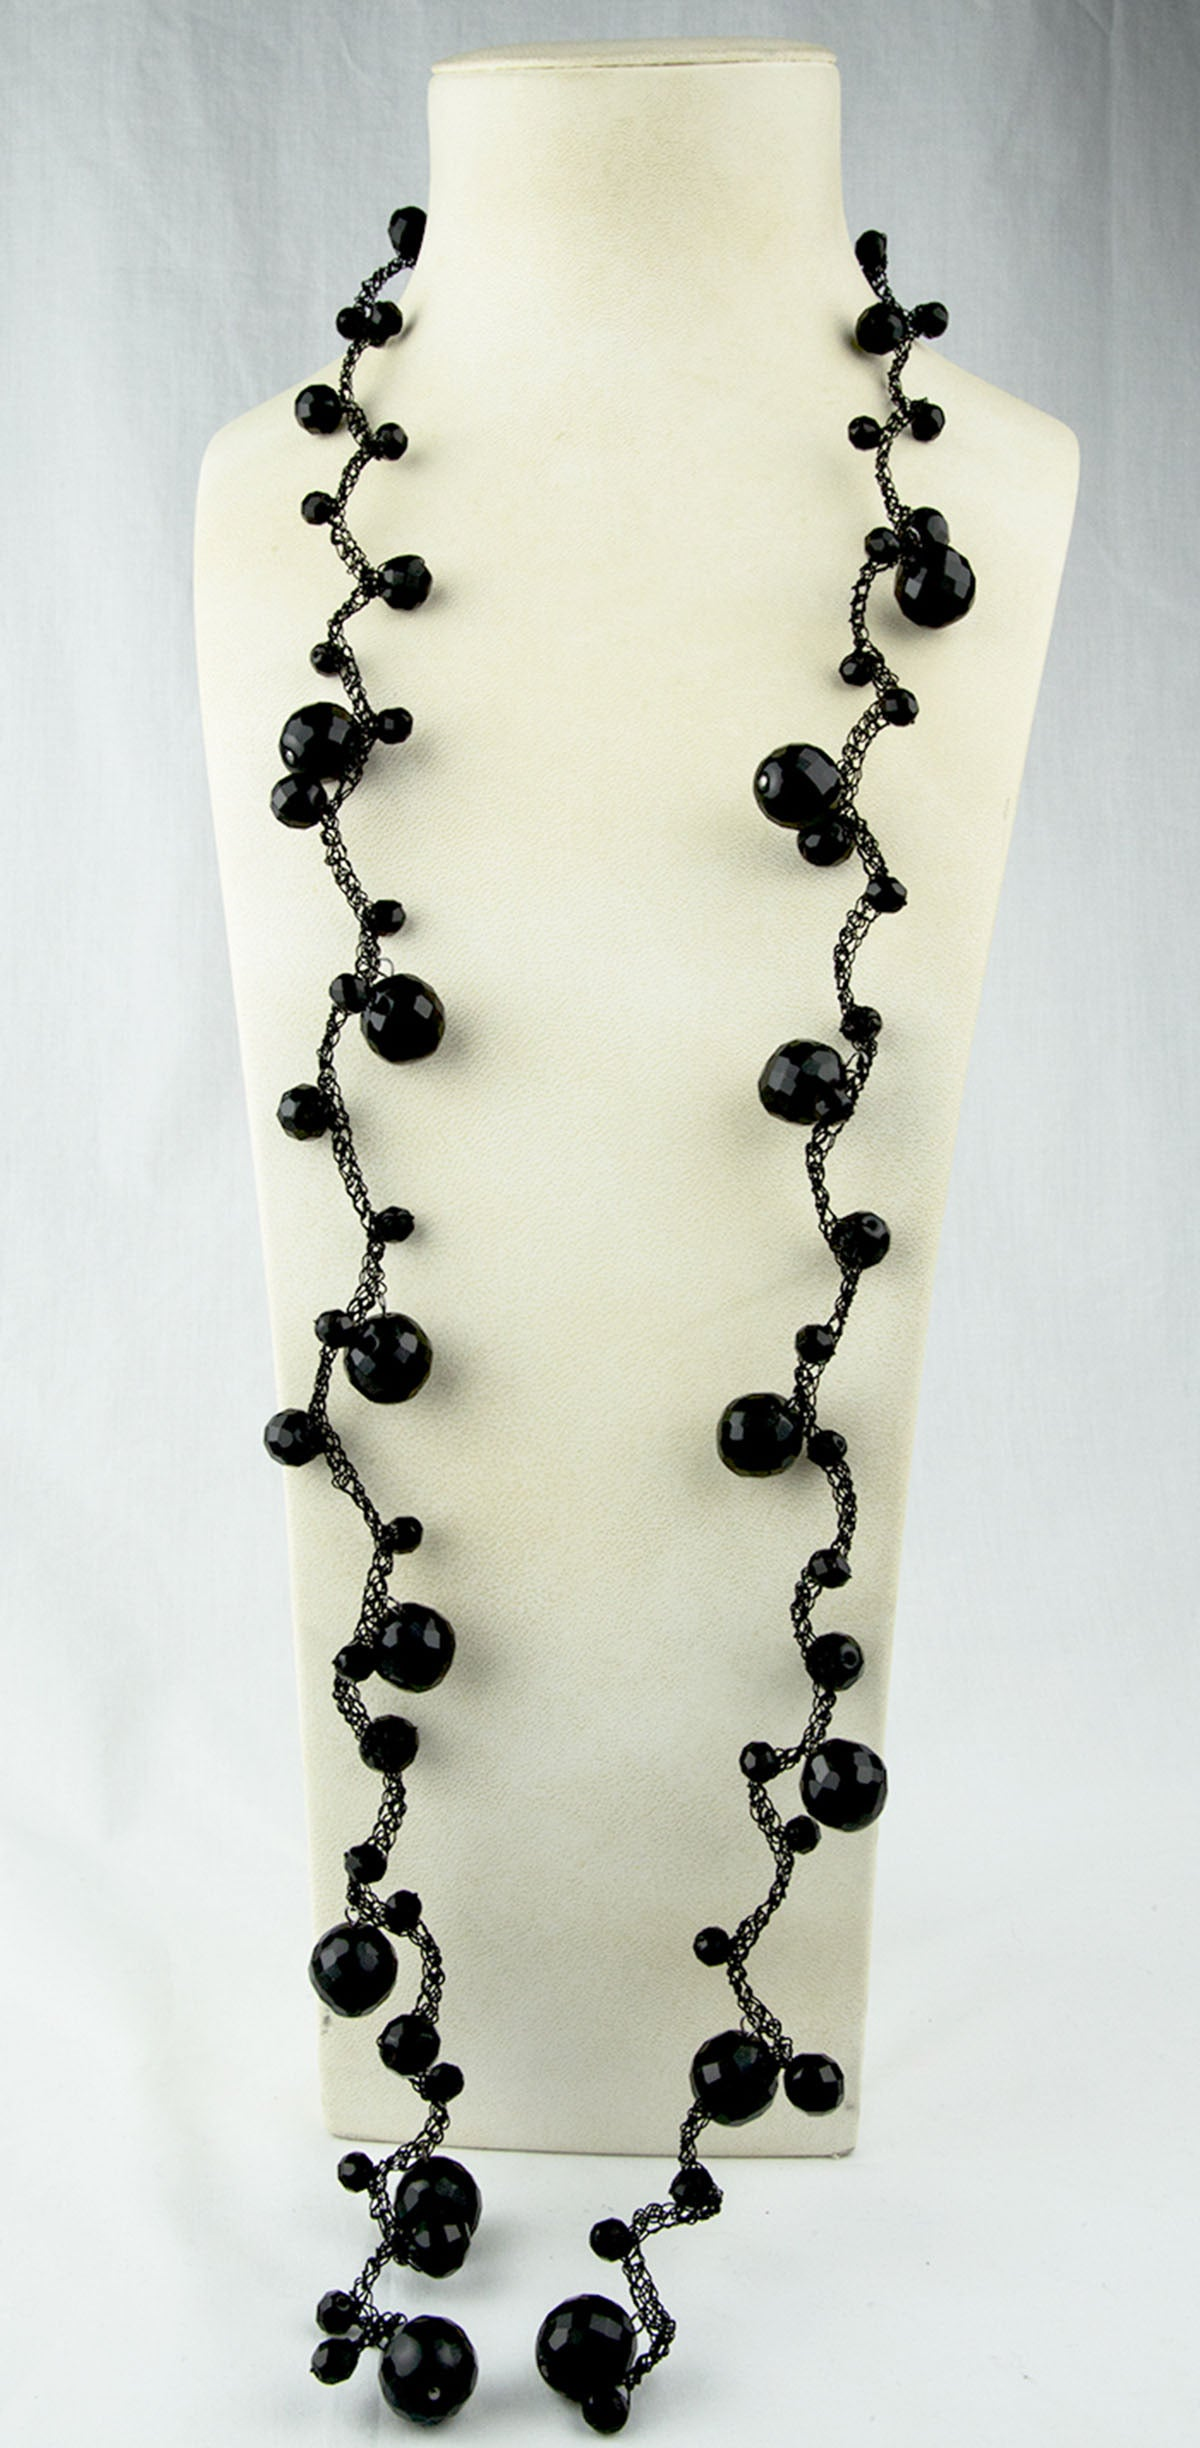 Long Black Jet and Braided Wire Sautoir Necklace For Sale at 1stdibs